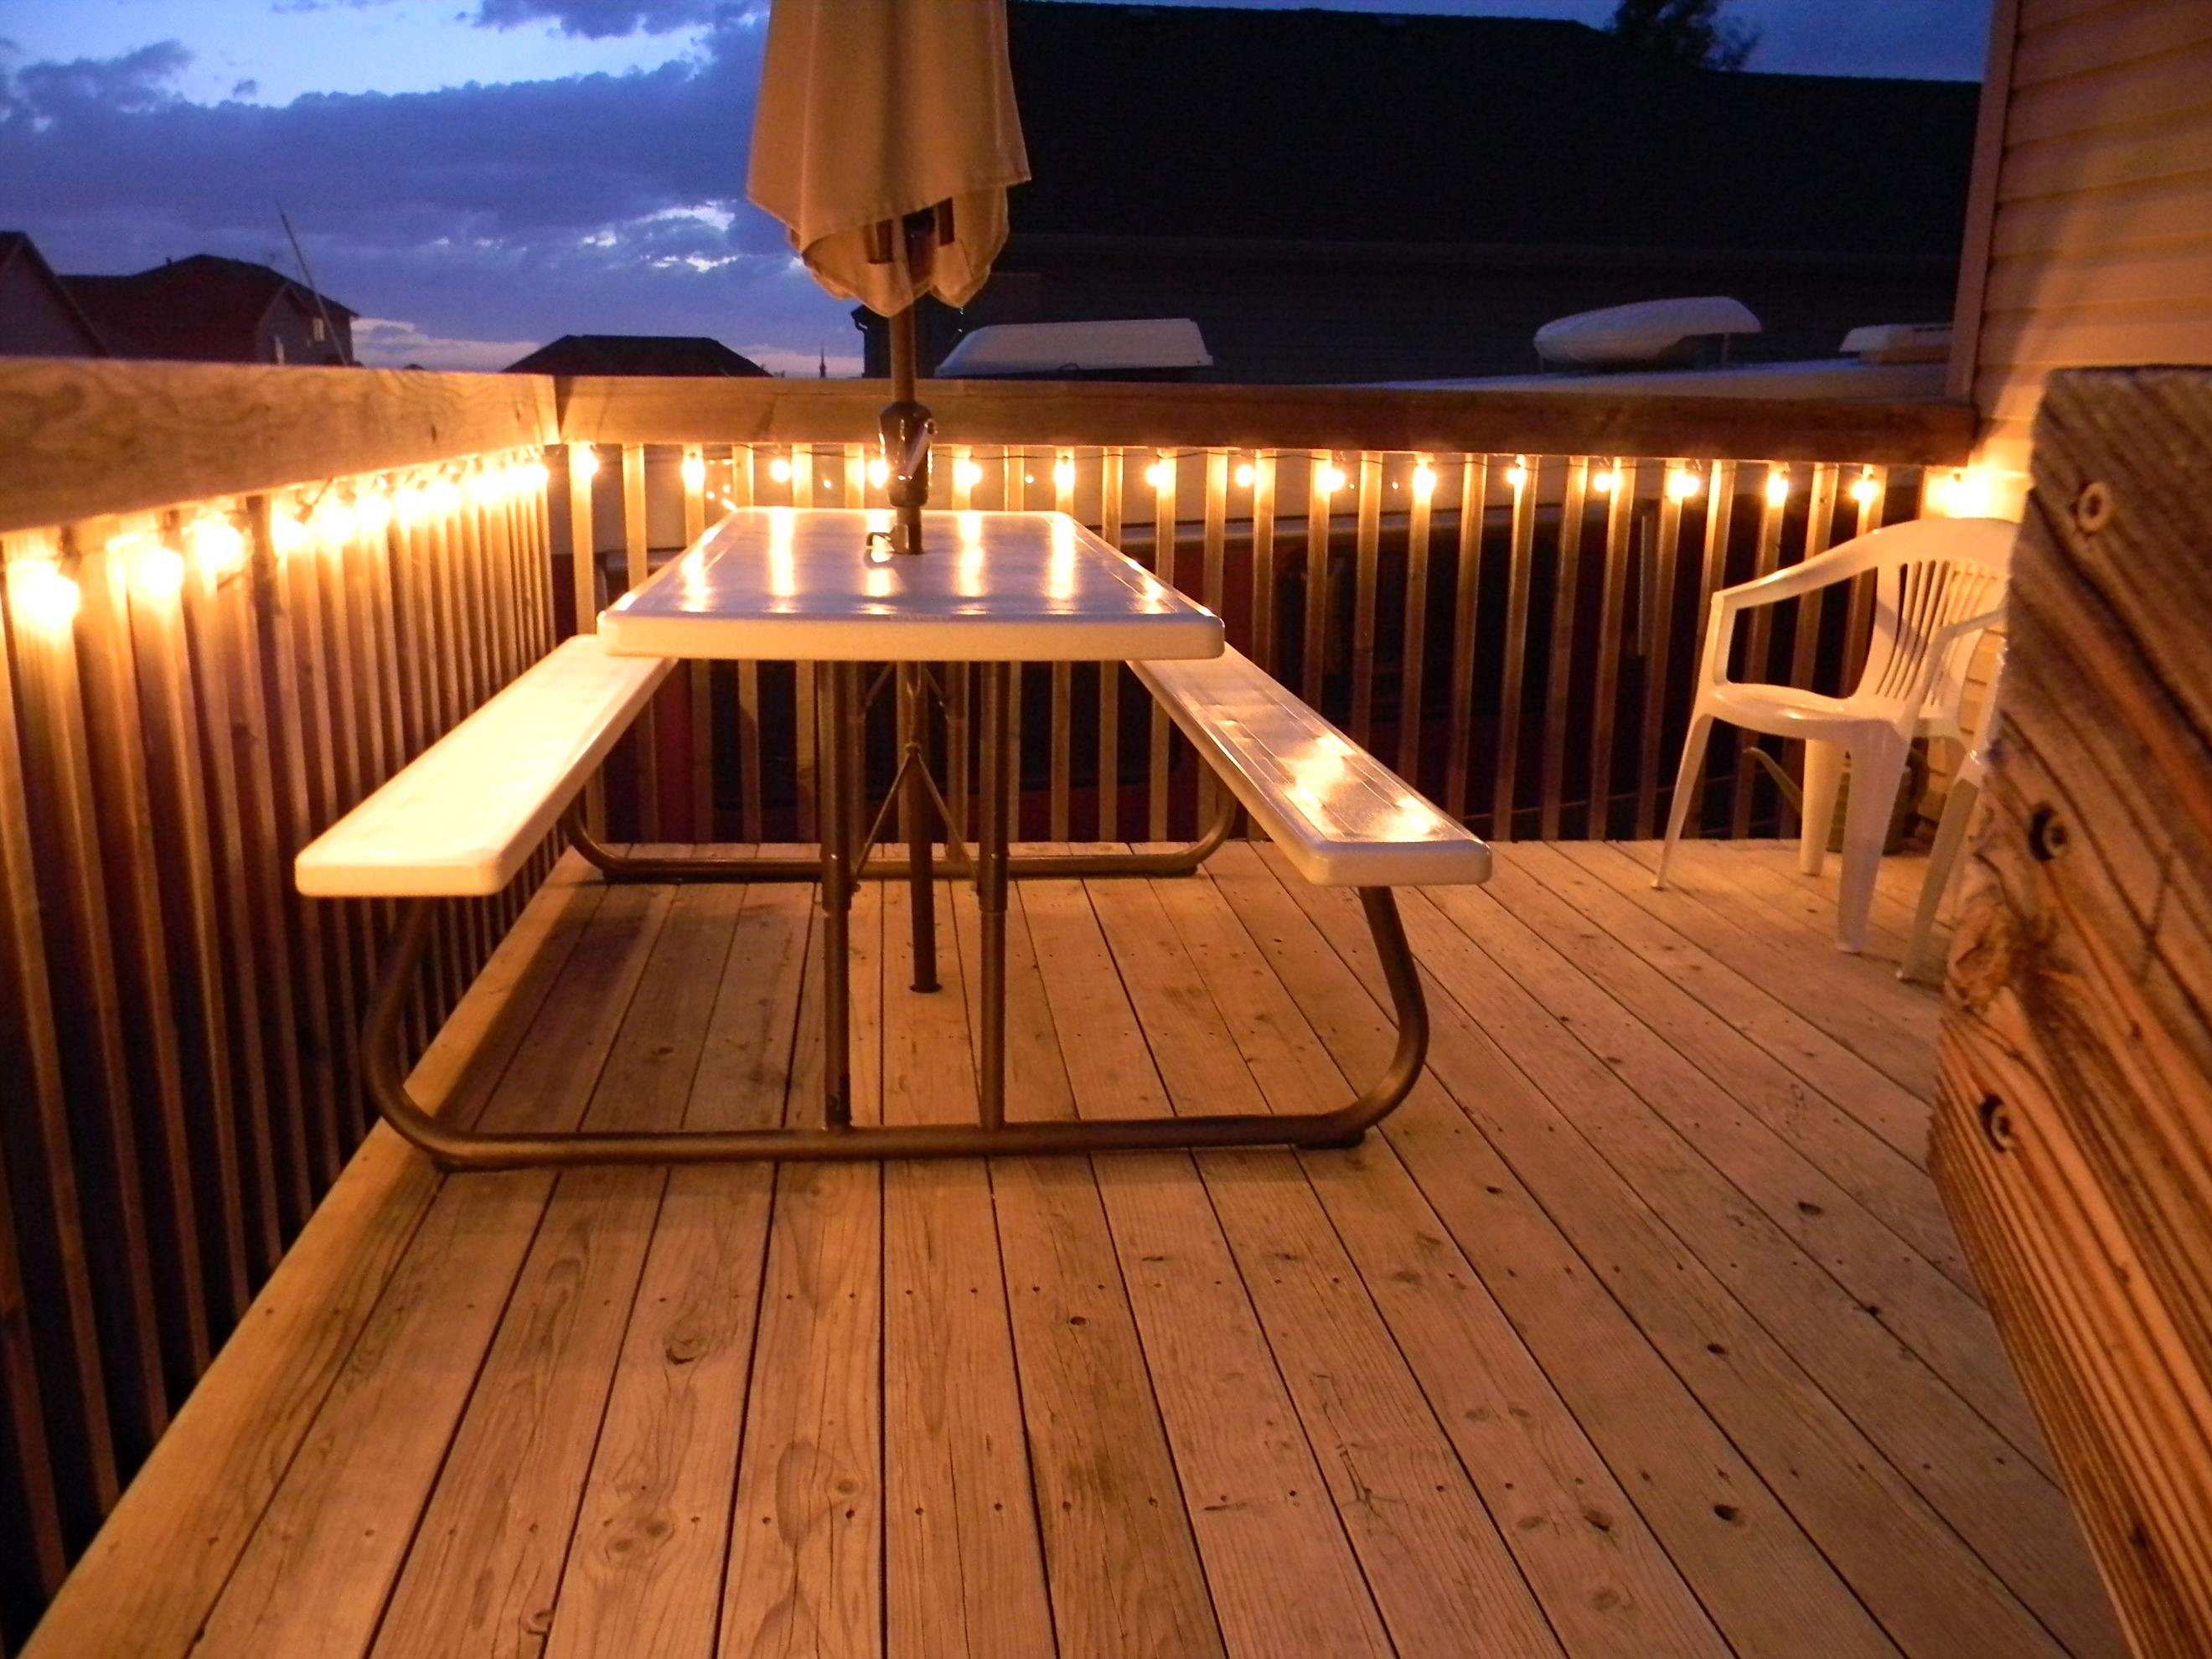 Diy under 5 features a little tipsy - How to design outdoor lighting plan ...